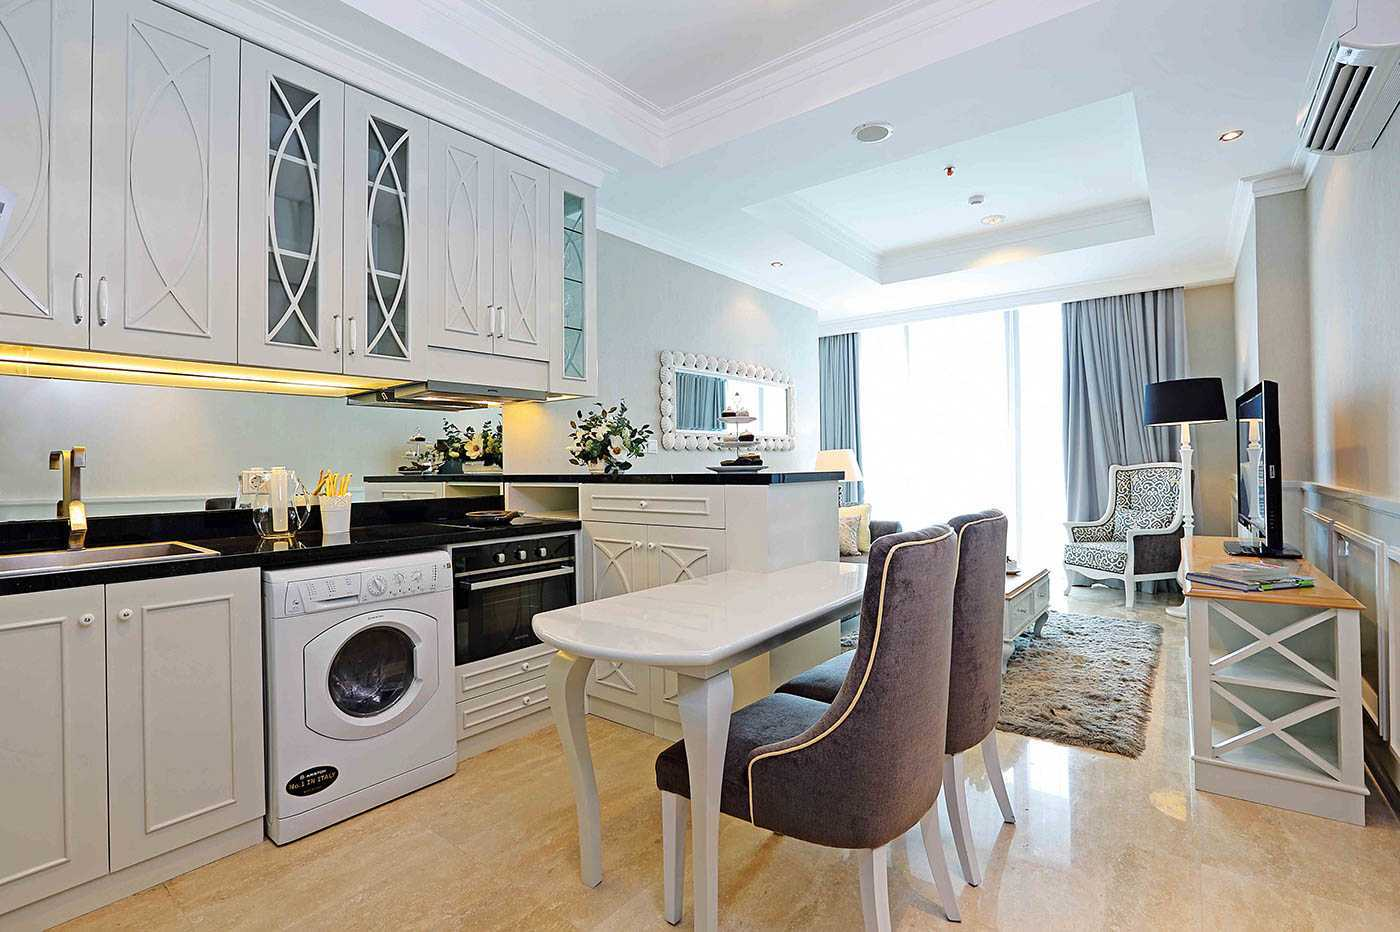 Yasinta Tri Wasiati Apartment Residence 8  Senopati Jakarta Jakarta Kitchen And Dining Room   12832